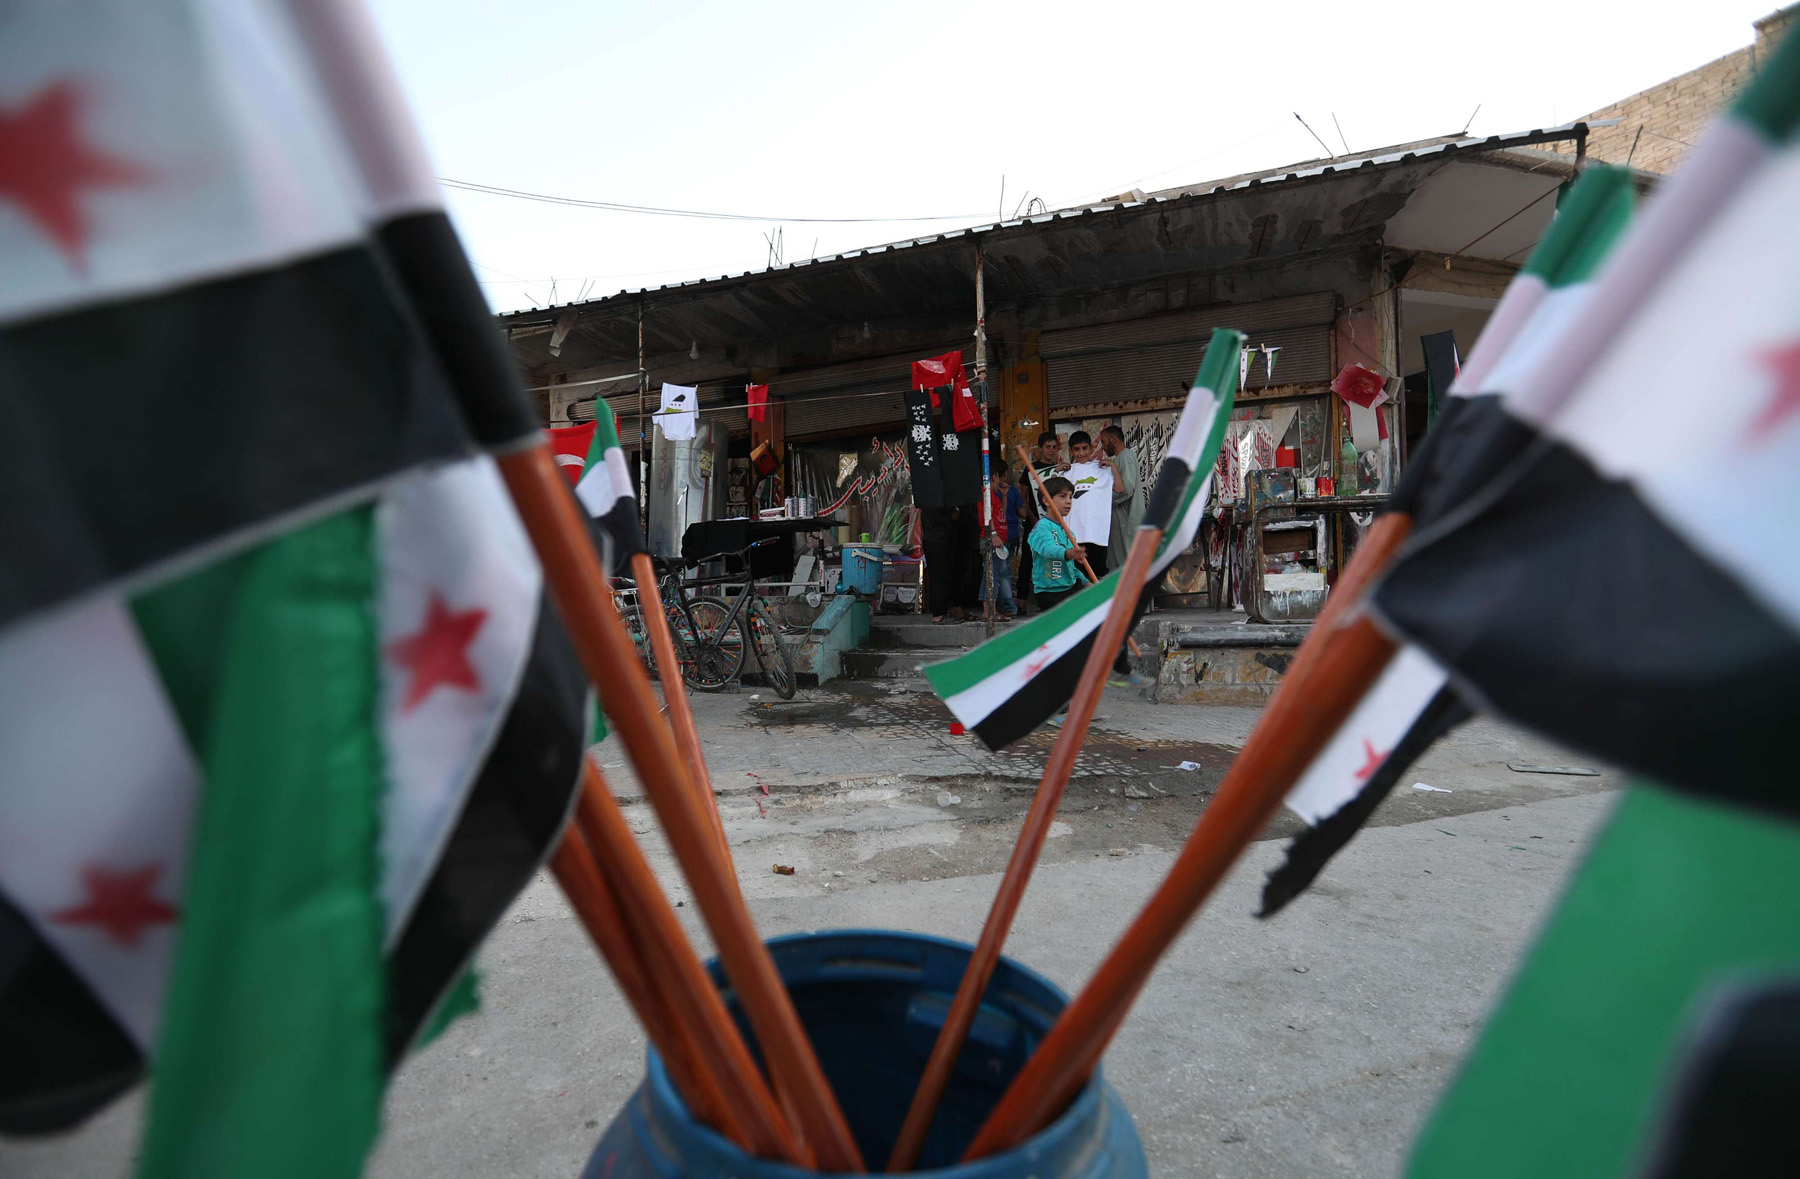 Freshly dyed Syrian opposition flags are seen hanging out to dry outside shops in the rebel-held town of Maaret al-Numan, in the north of Idlib province on September 27, 2018. (AFP)